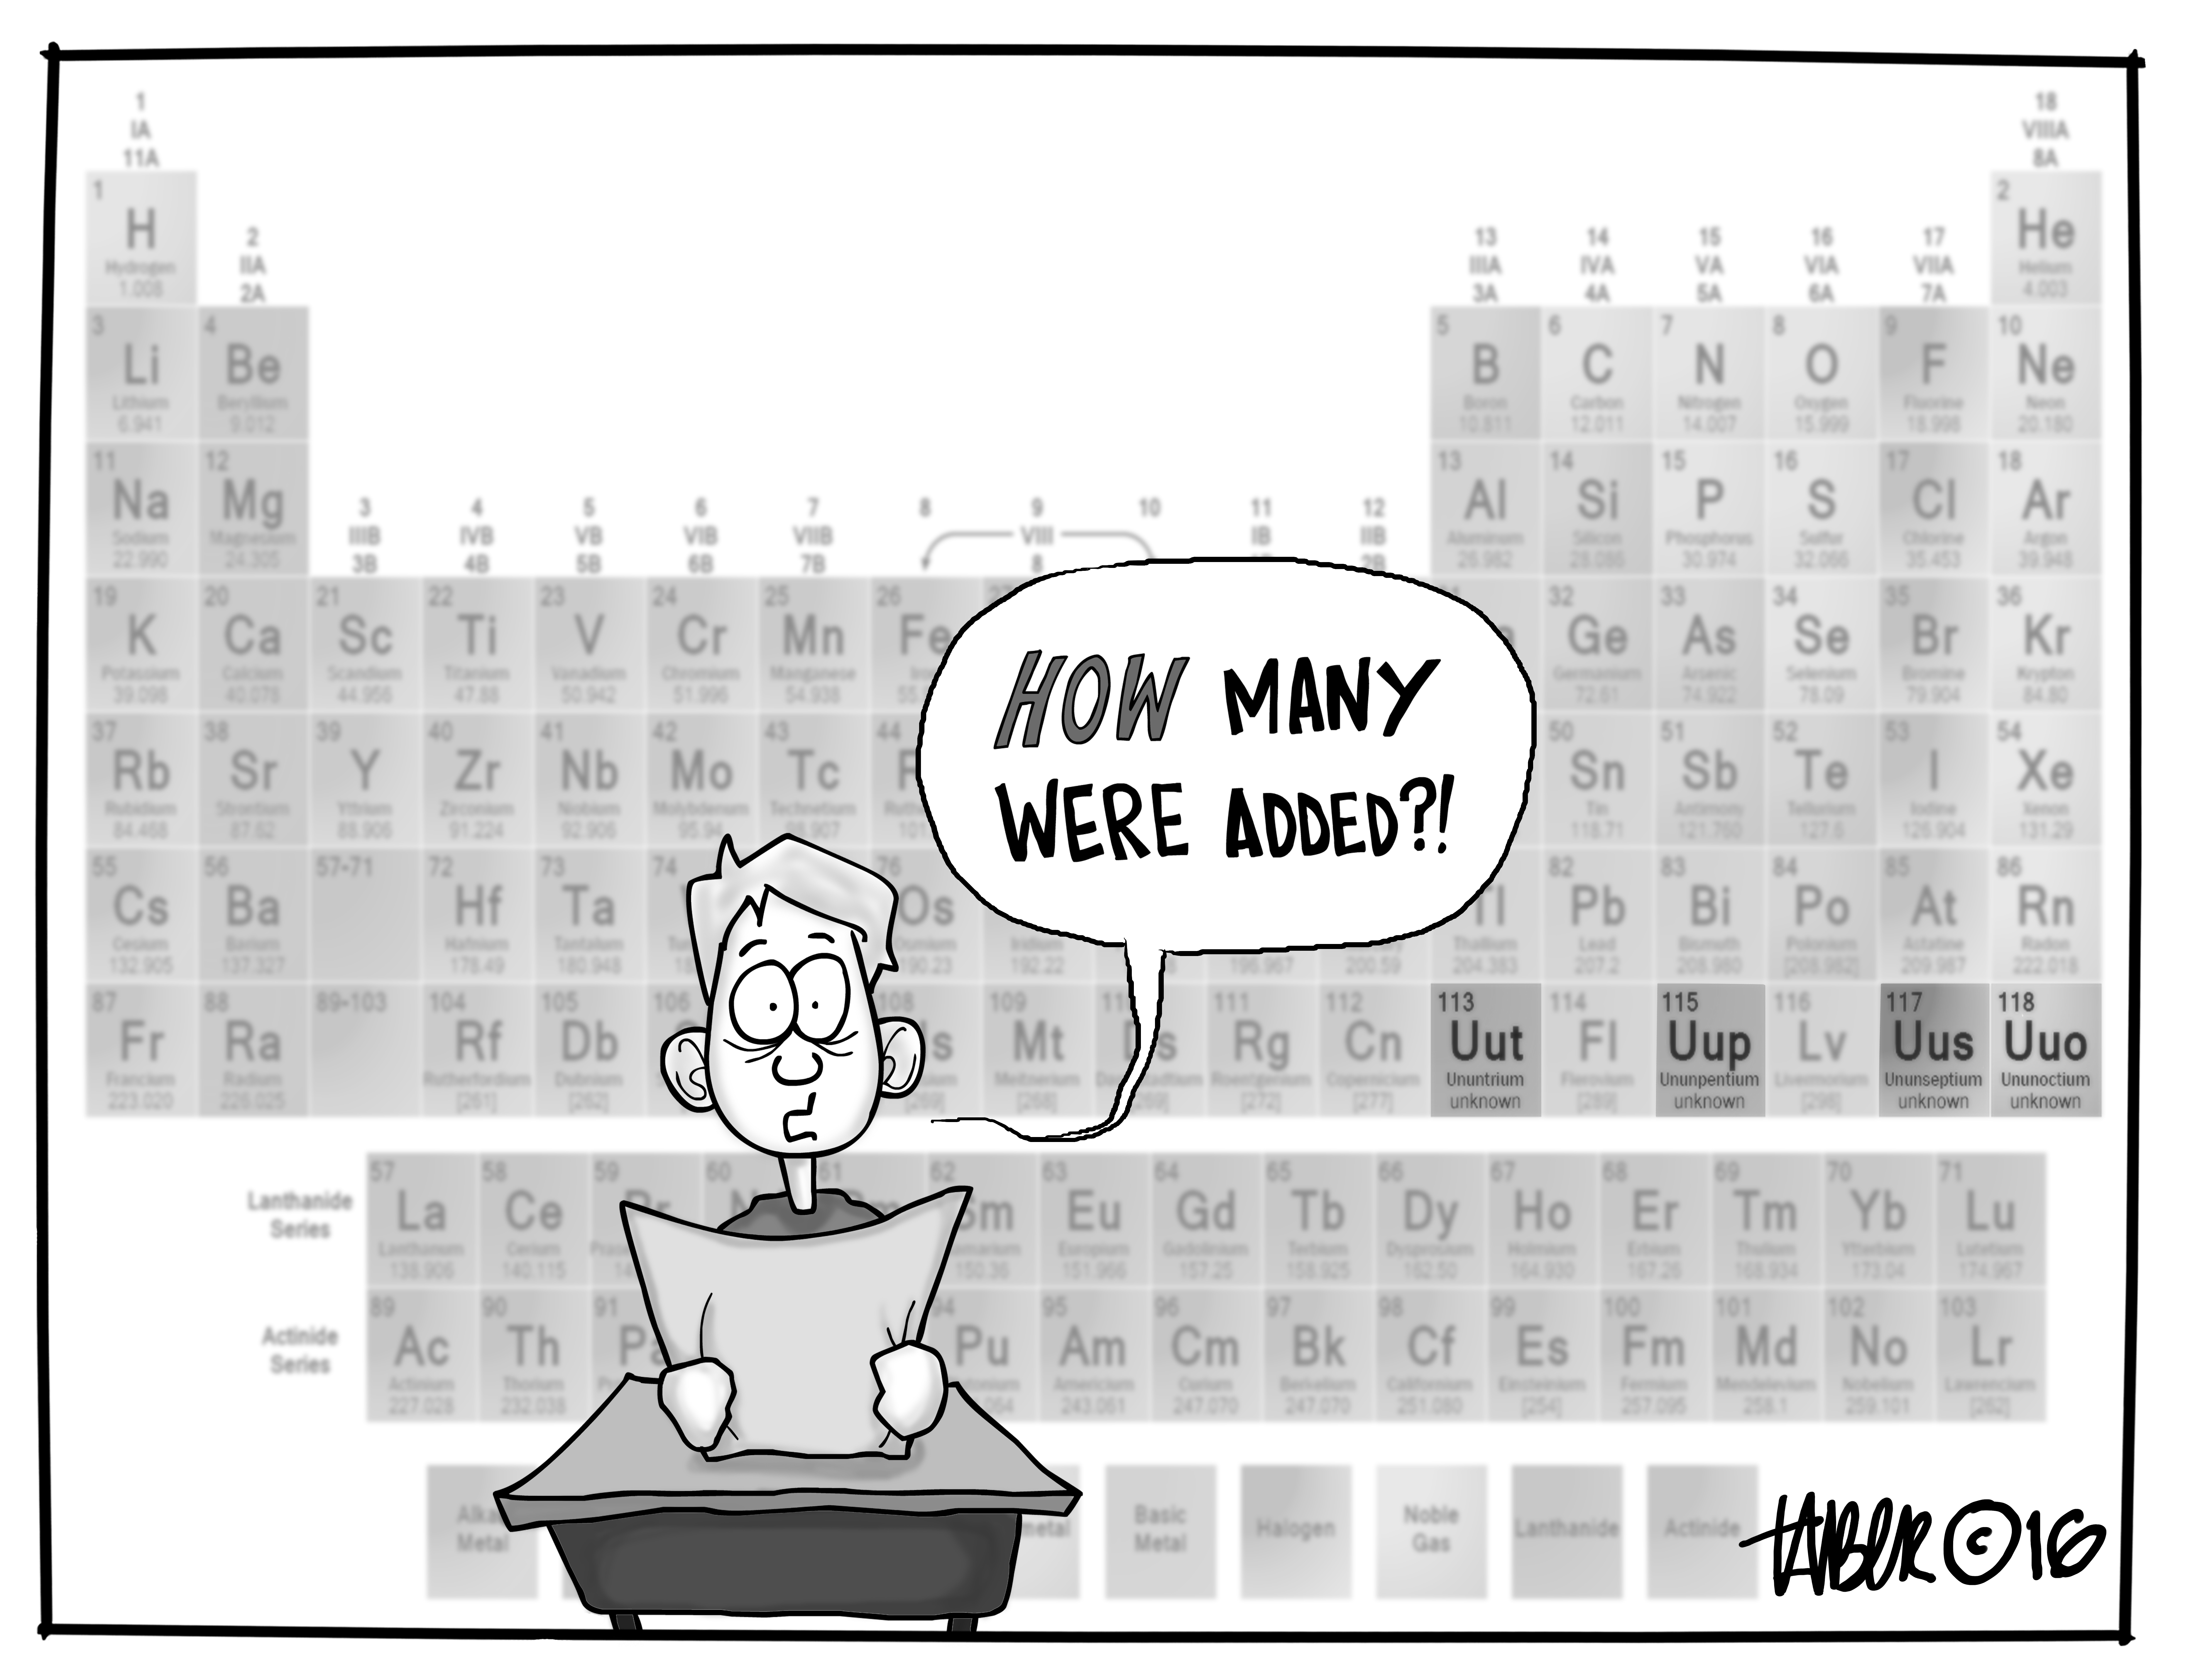 01 05 16 Periodic Table Of Elements Addition Cartoon The Cartoons